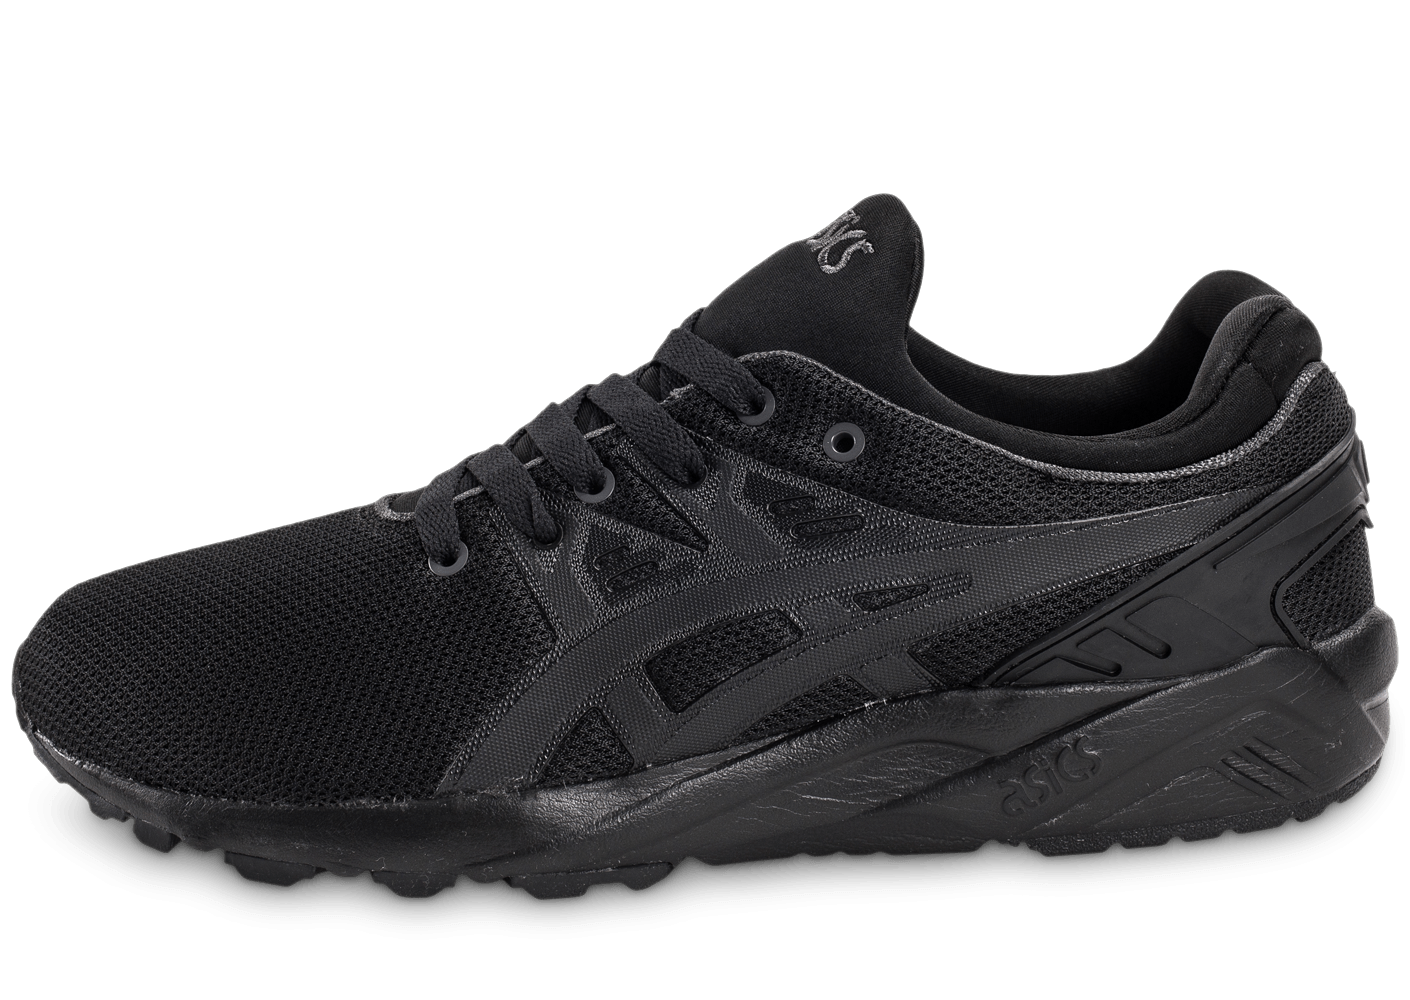 asics gel kayano trainer evo noire chaussures homme chausport. Black Bedroom Furniture Sets. Home Design Ideas